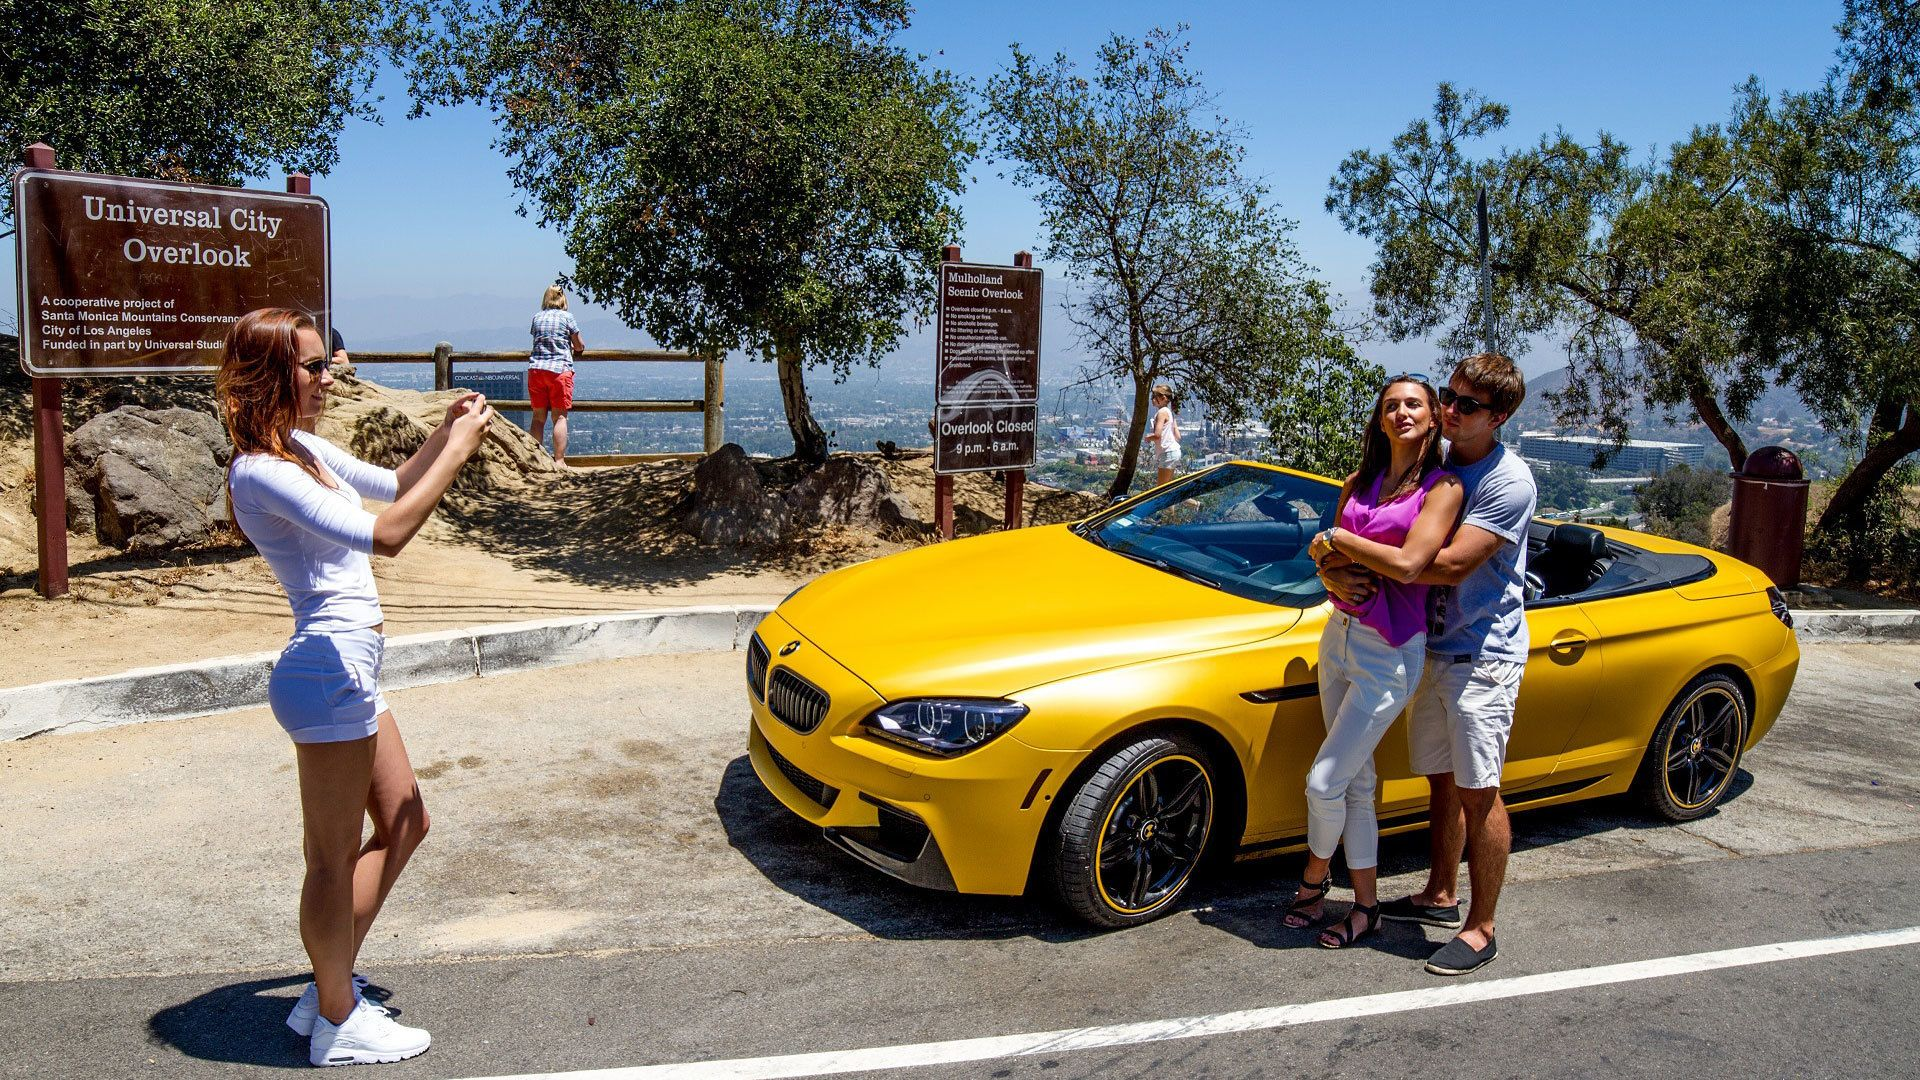 Couple posing for photo next to BMW sports convertible in Los Angeles